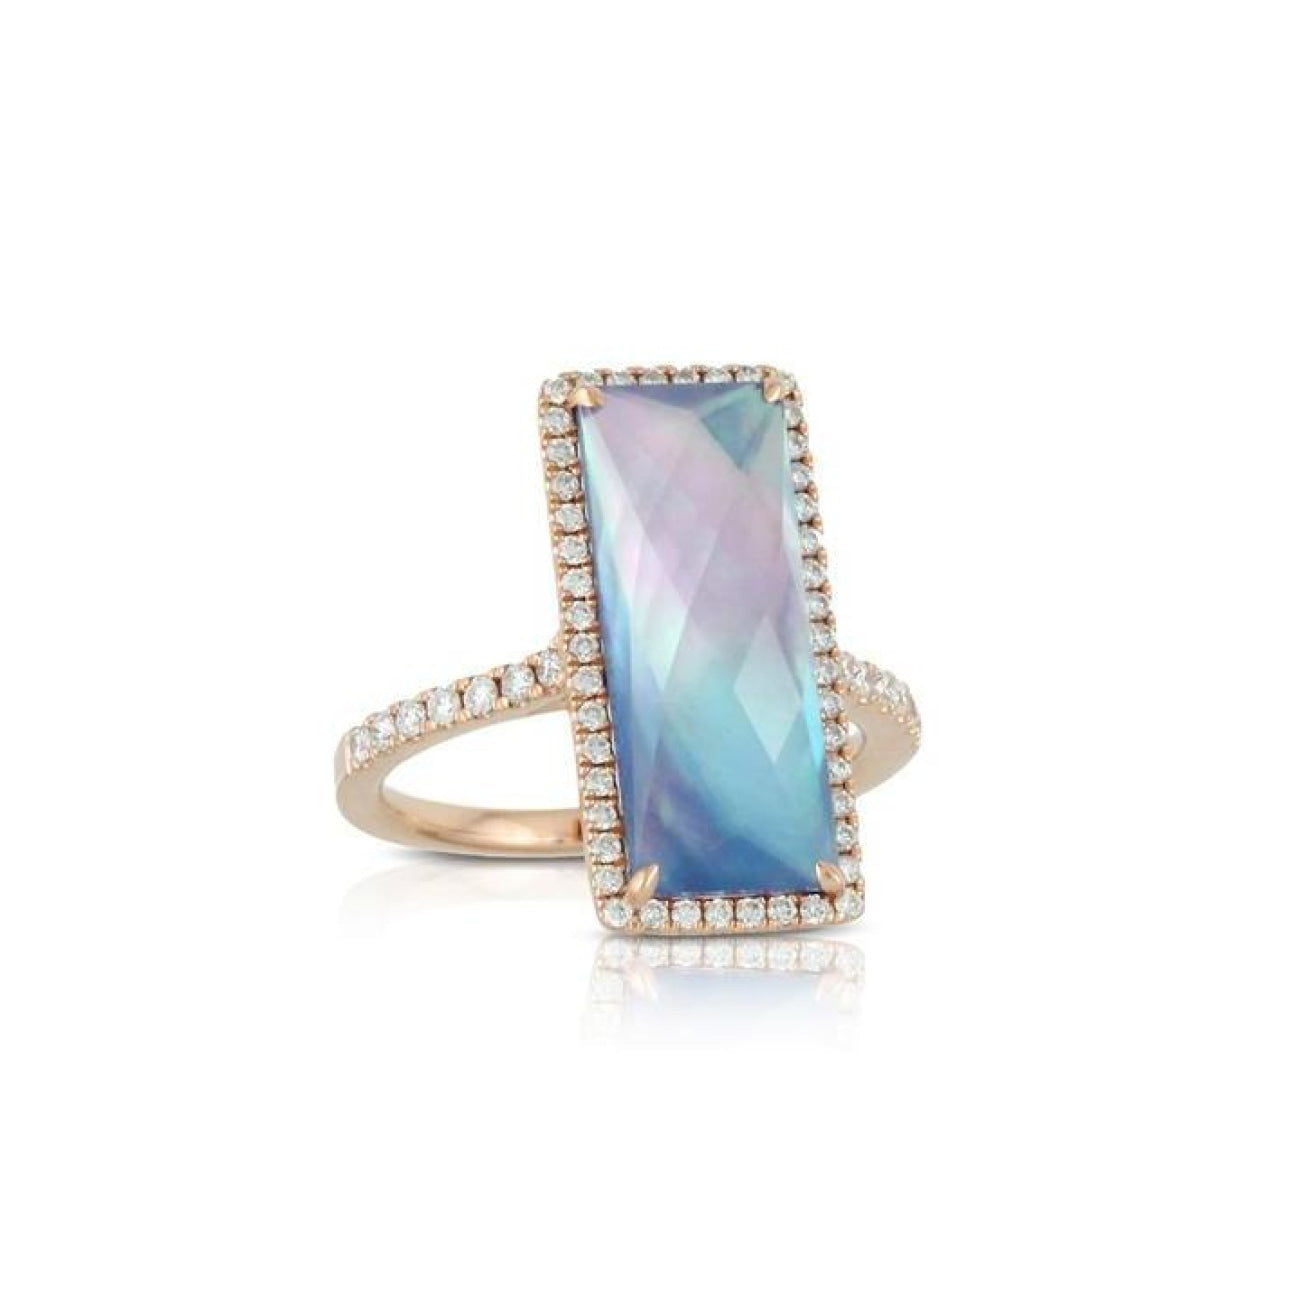 Doves Jewelry - Parisian Plum Colection Ring | Manfredi Jewels